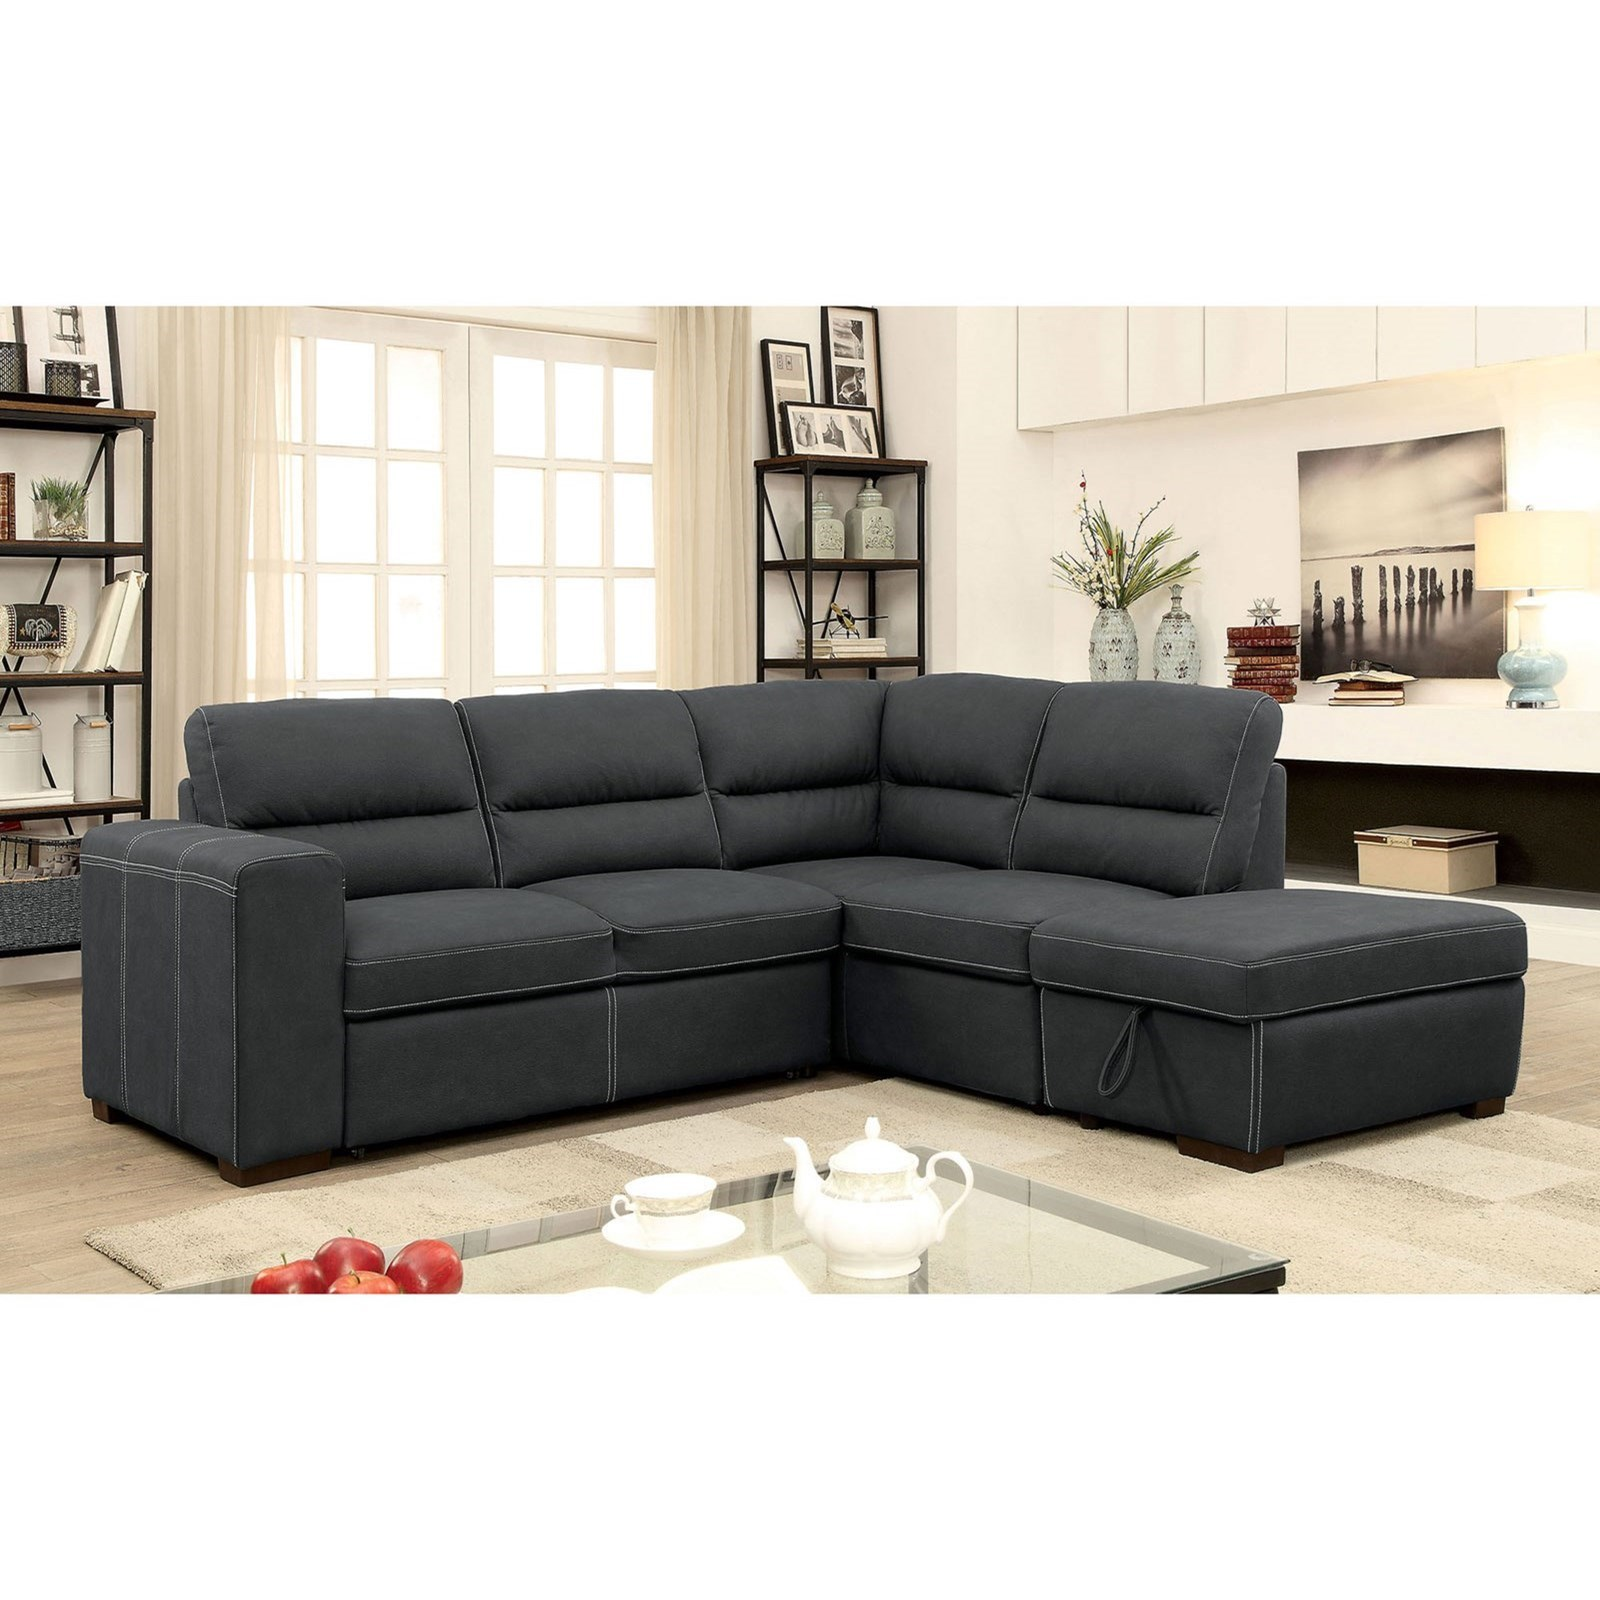 Nellie Sectional by Furniture of America at Nassau Furniture and Mattress